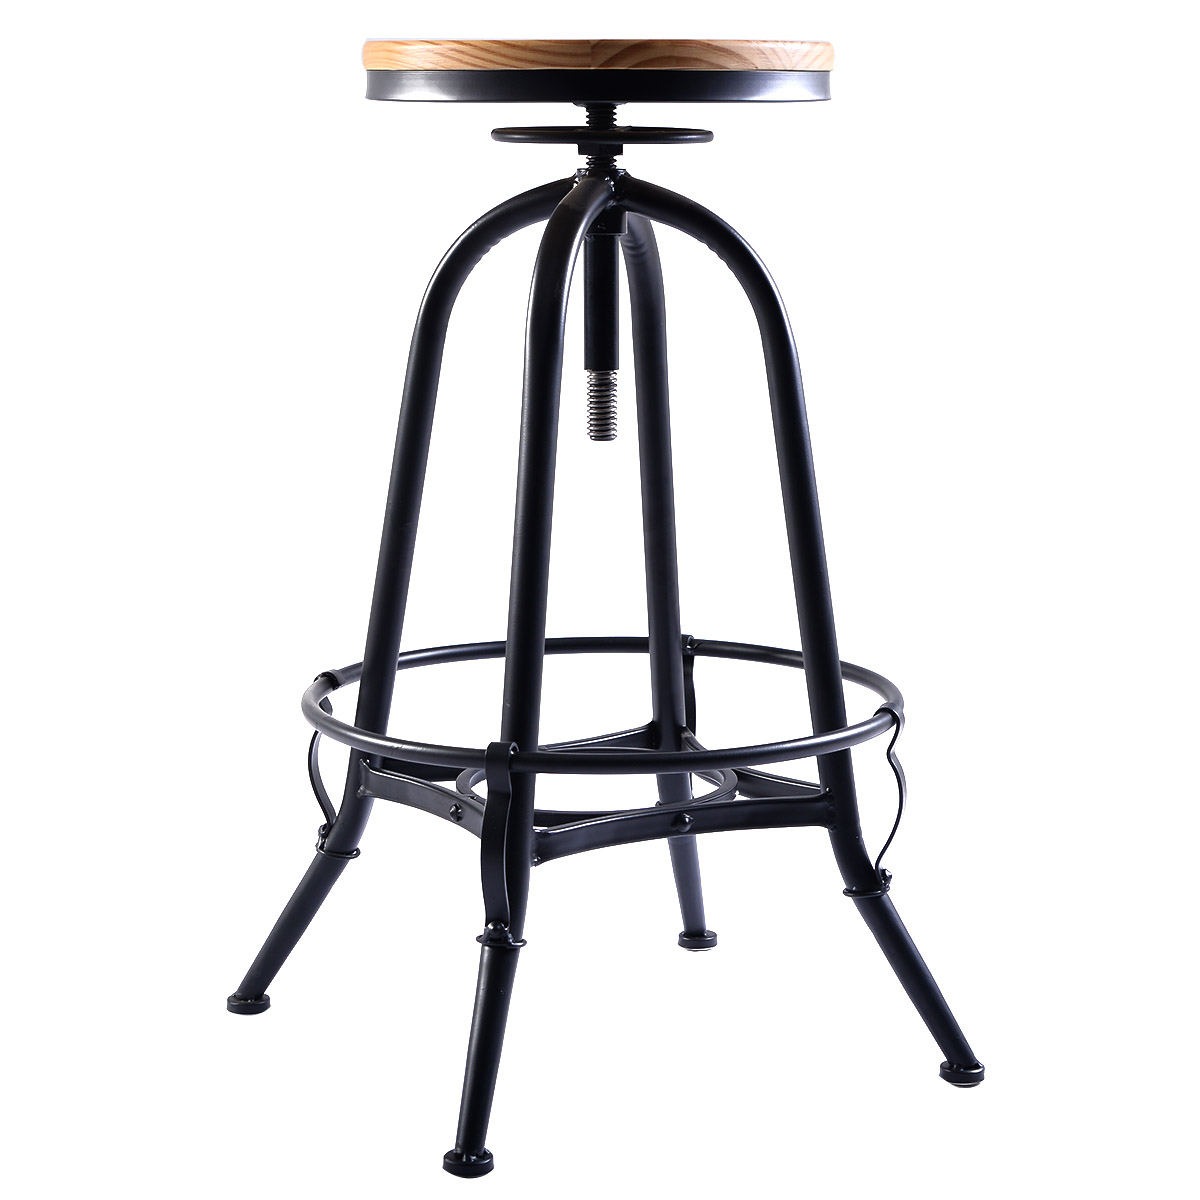 Costway Vintage Bar Stool Metal Frame Wood Top Adjustable Height Swivel Industrial - Walmart.com  sc 1 st  Walmart & Costway Vintage Bar Stool Metal Frame Wood Top Adjustable Height ... islam-shia.org